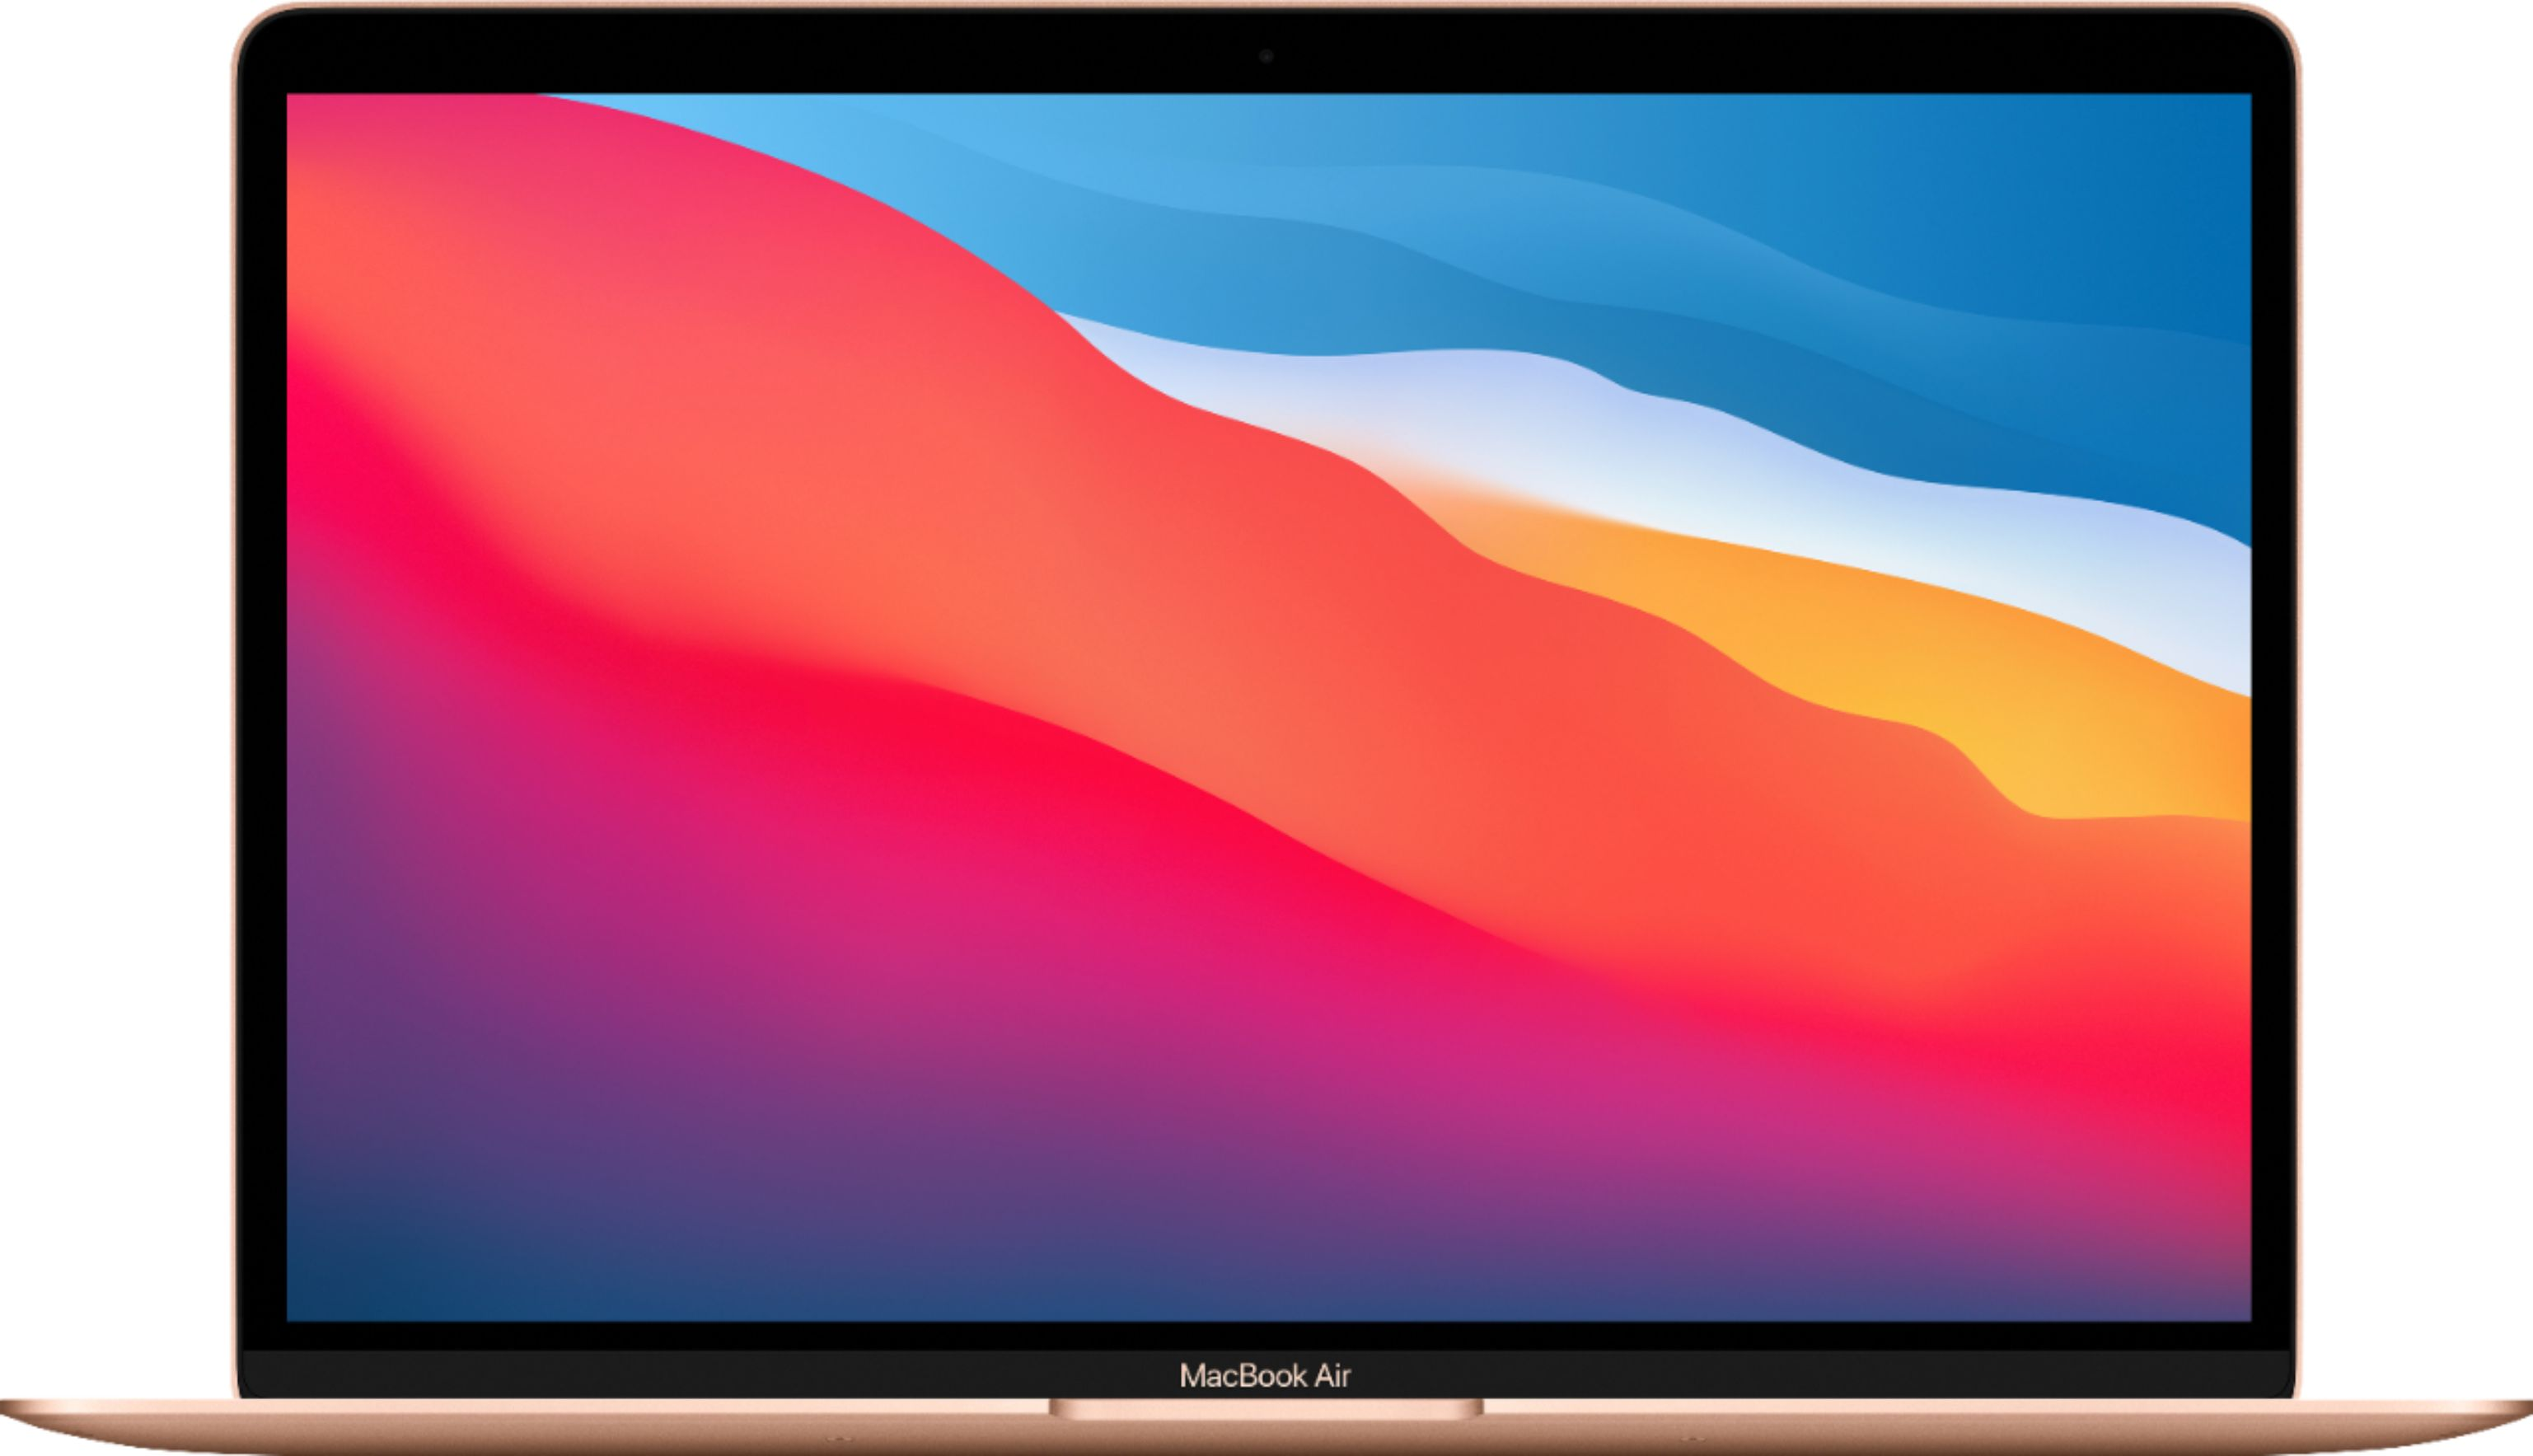 """Front Zoom. MacBook Air 13.3"""" Laptop - Apple M1 chip - 8GB Memory - 512GB SSD (Latest Model) - Gold."""